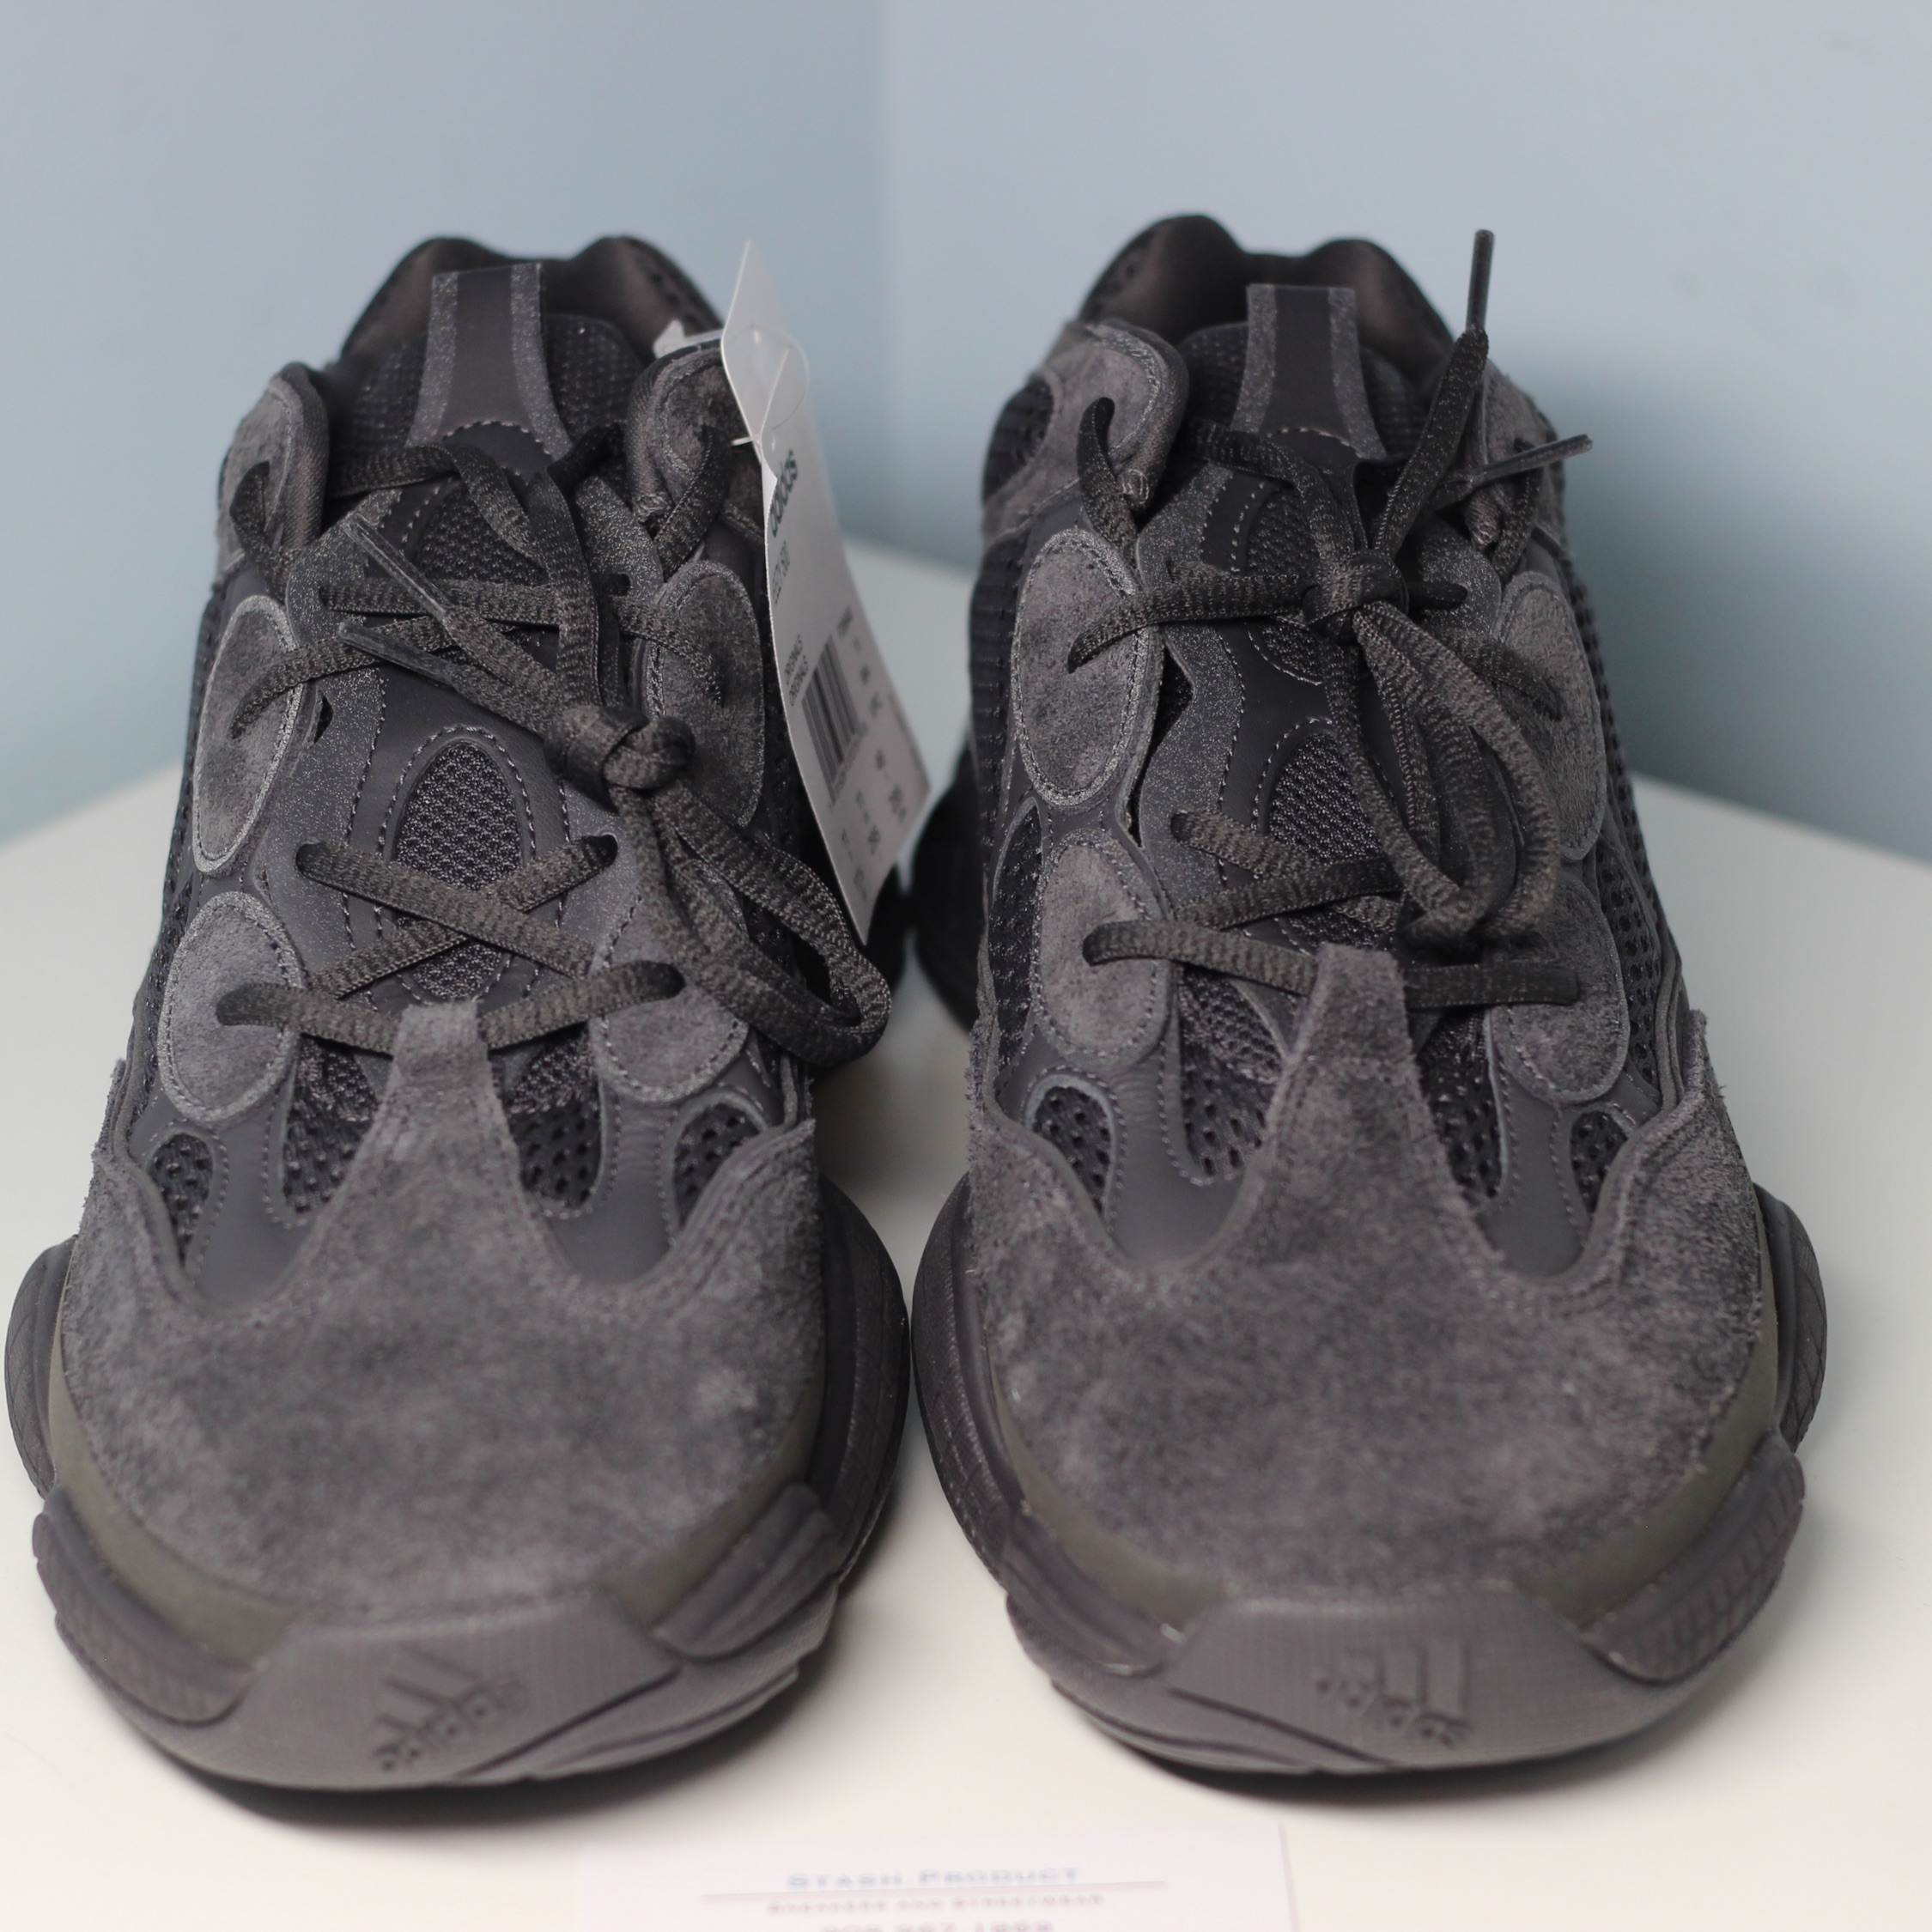 detailed look 3dbae 44282 Adidas Kanye West Yeezy 500 Utility Black Sz 11.5